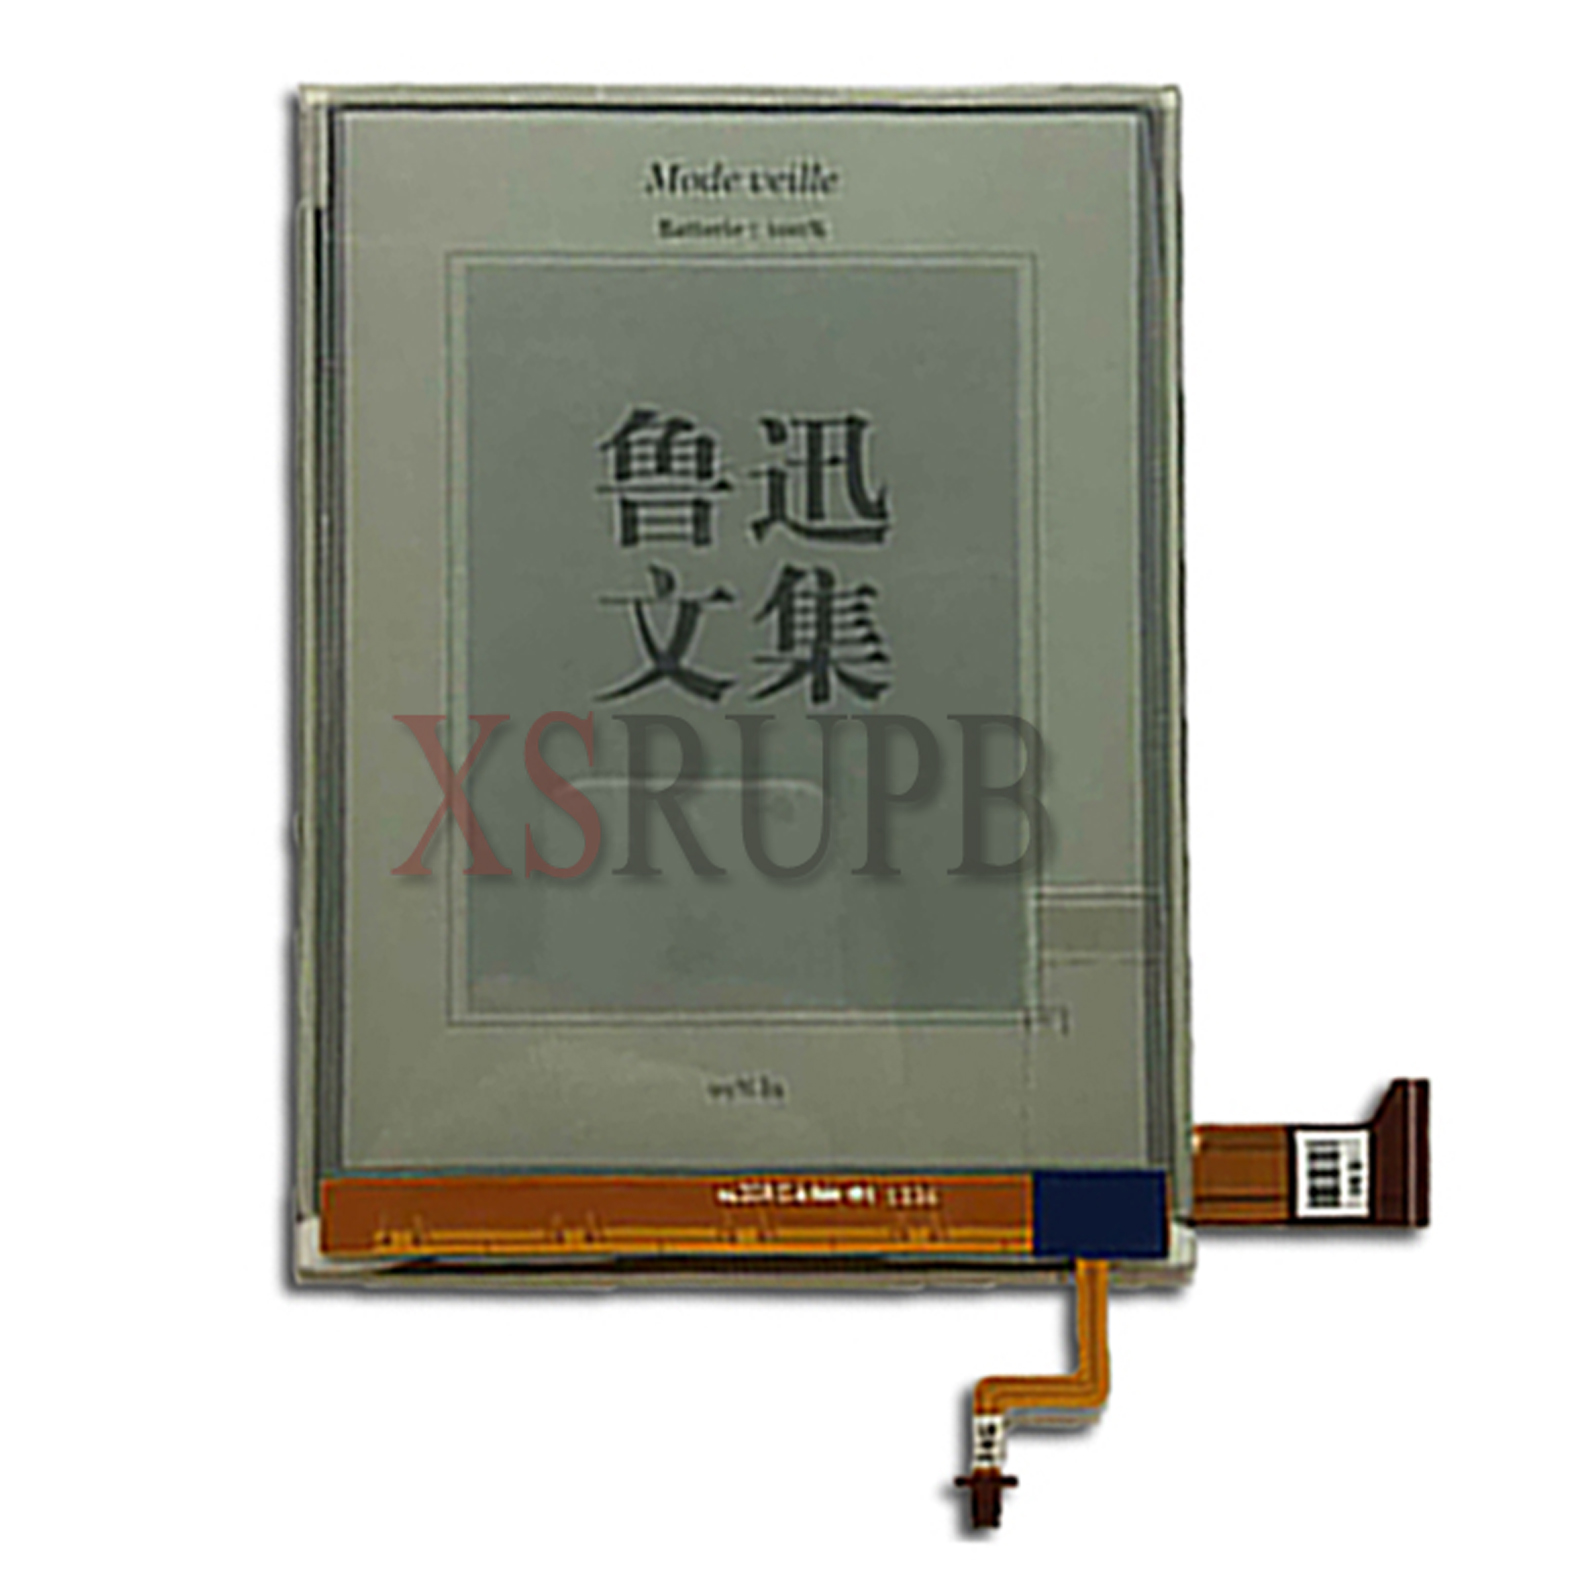 1024*758 lcd display for Digma R60G BQ Cervantes 2013 bq Nuevo Cervantes 8GB Reader Daily free shipping new original e ink 758 1024 6 0 inch hd xga pearl screen for bq nuevo cervantes 8gb reader ebook ereader lcd display